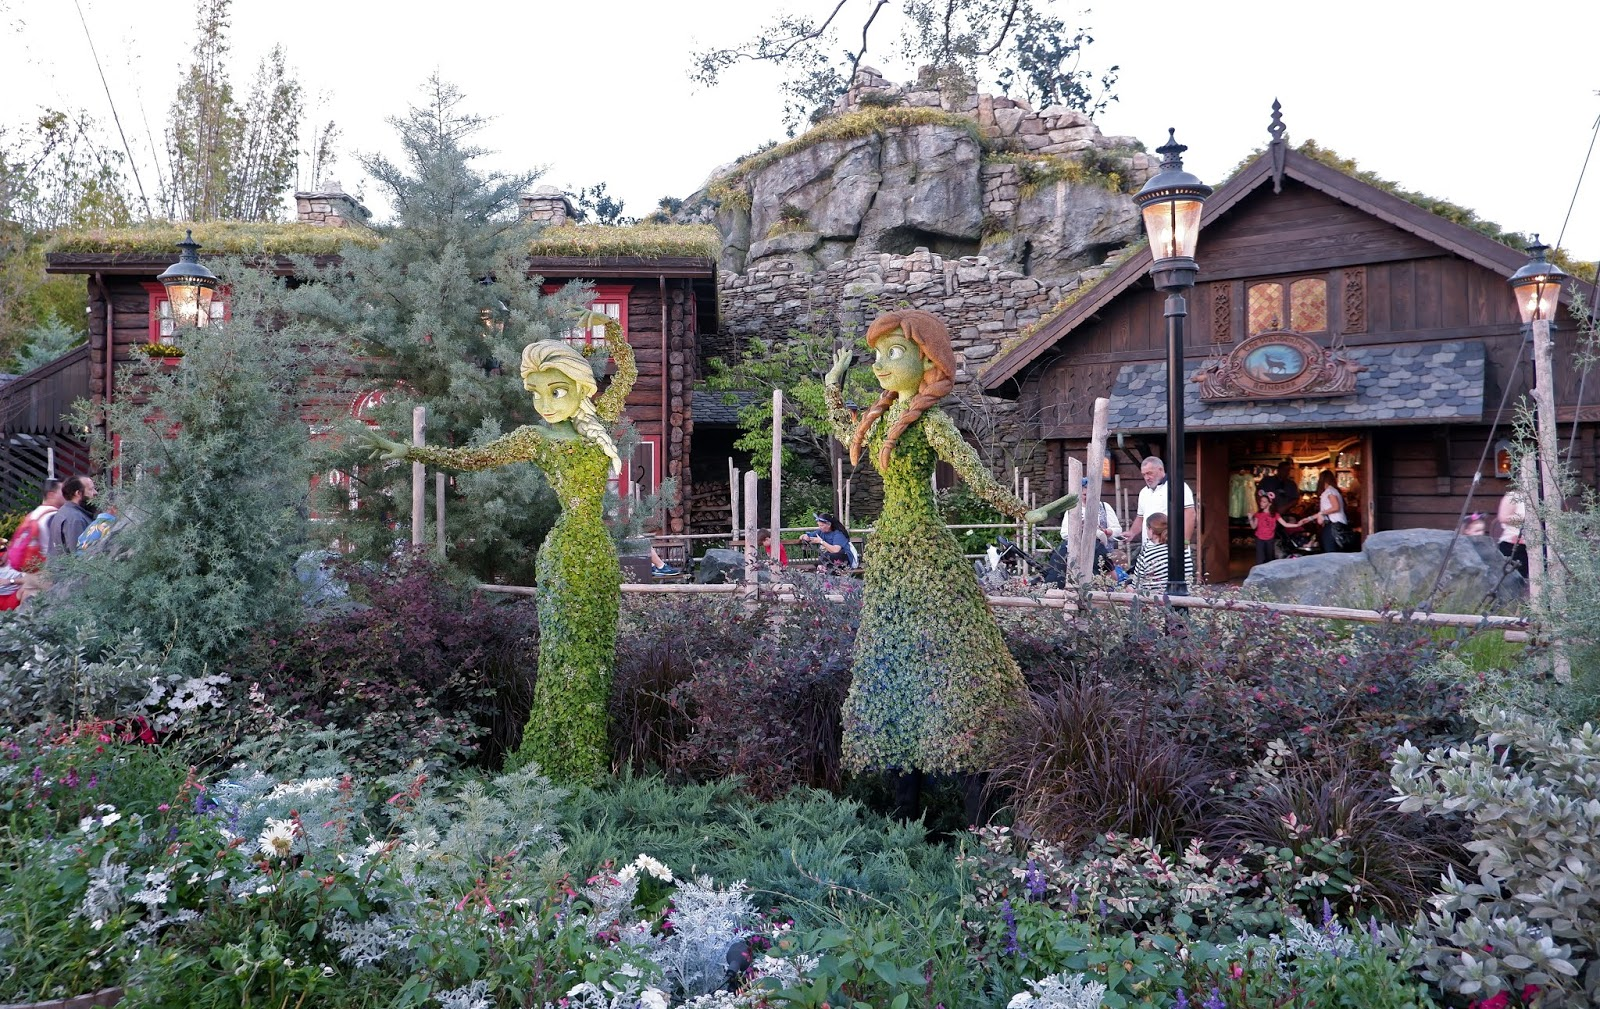 Elsa and Anna topiaries at the 2019 Epcot International Flower and Garden Festival